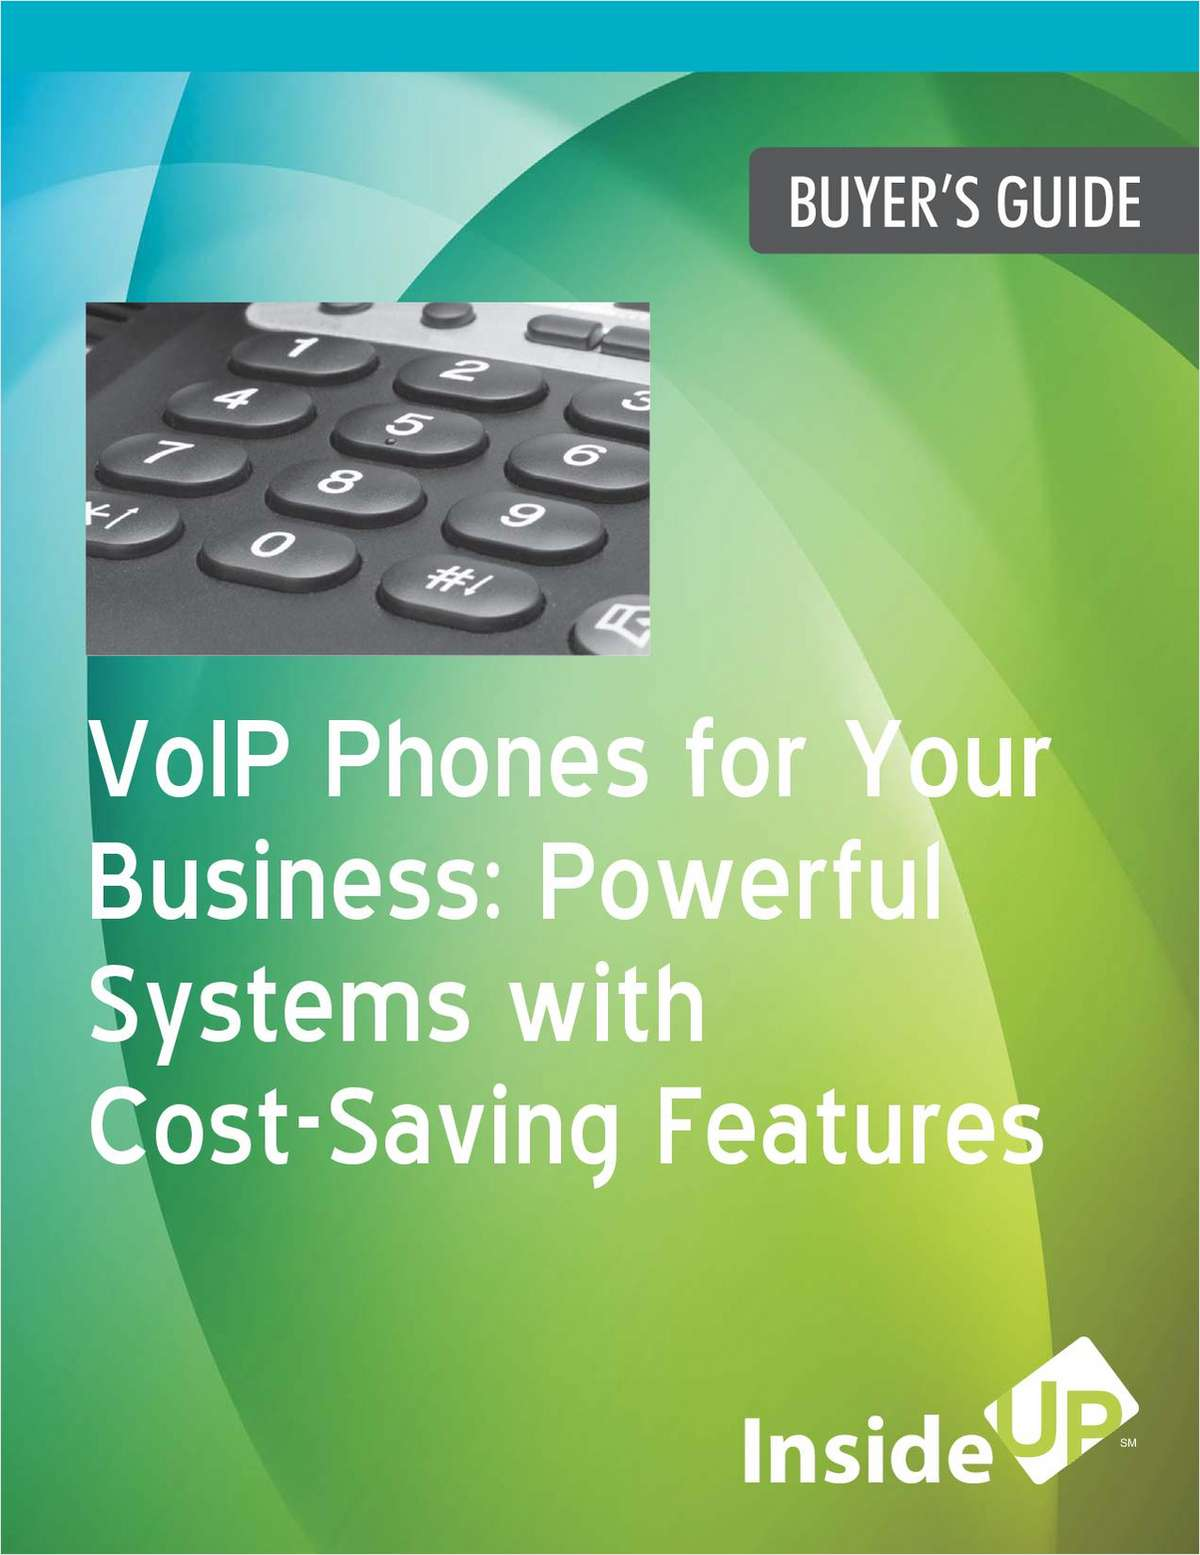 VoIP Phones For Your Business:  Powerful Systems With Cost-Saving Features